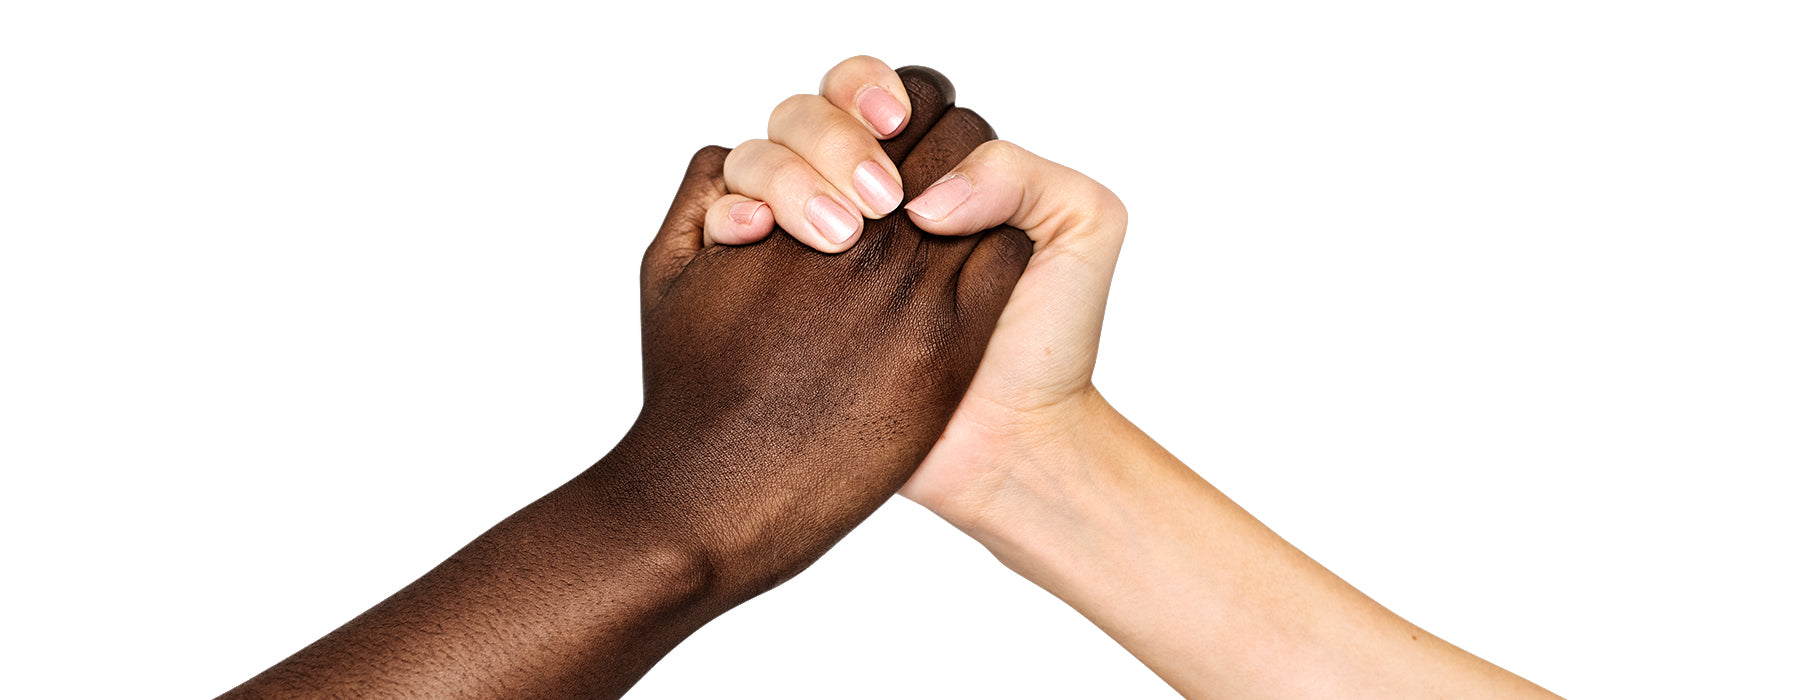 holding hands against white background